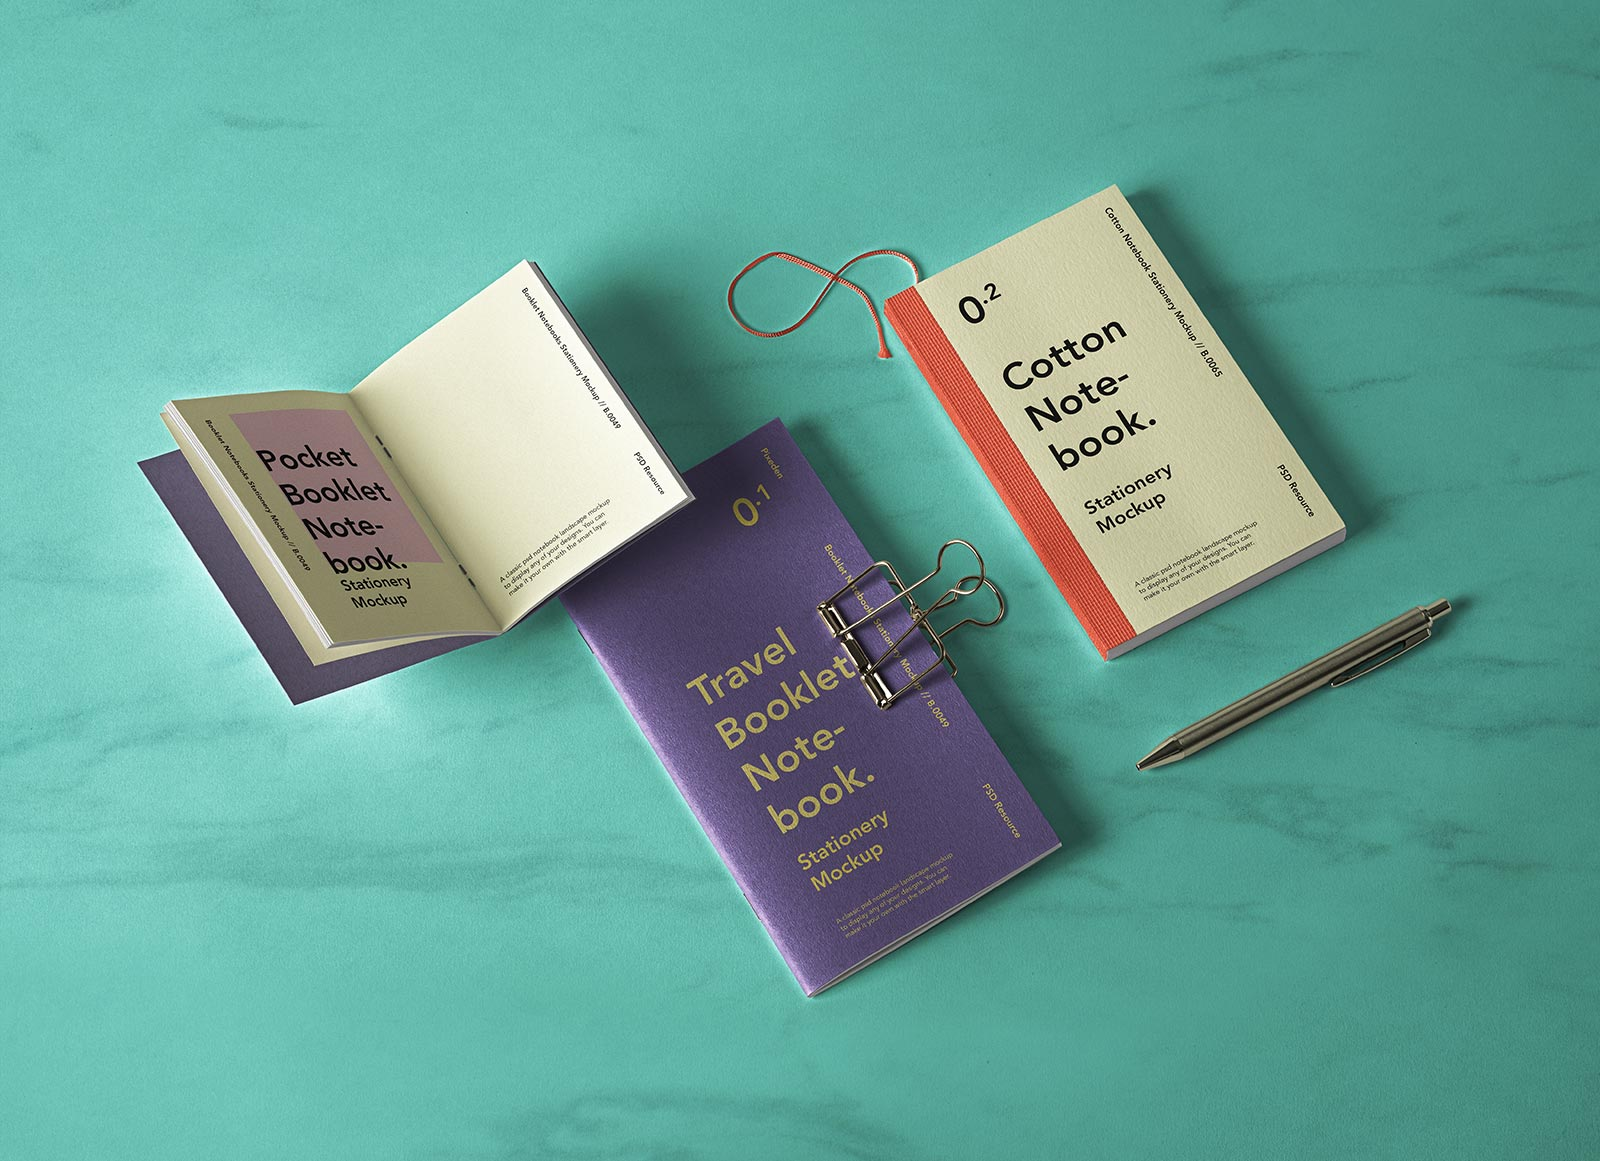 Free-Cotton-Notebook,-Pocket-Booklet-&-Travel-Literature-Book-Mockup-PSD